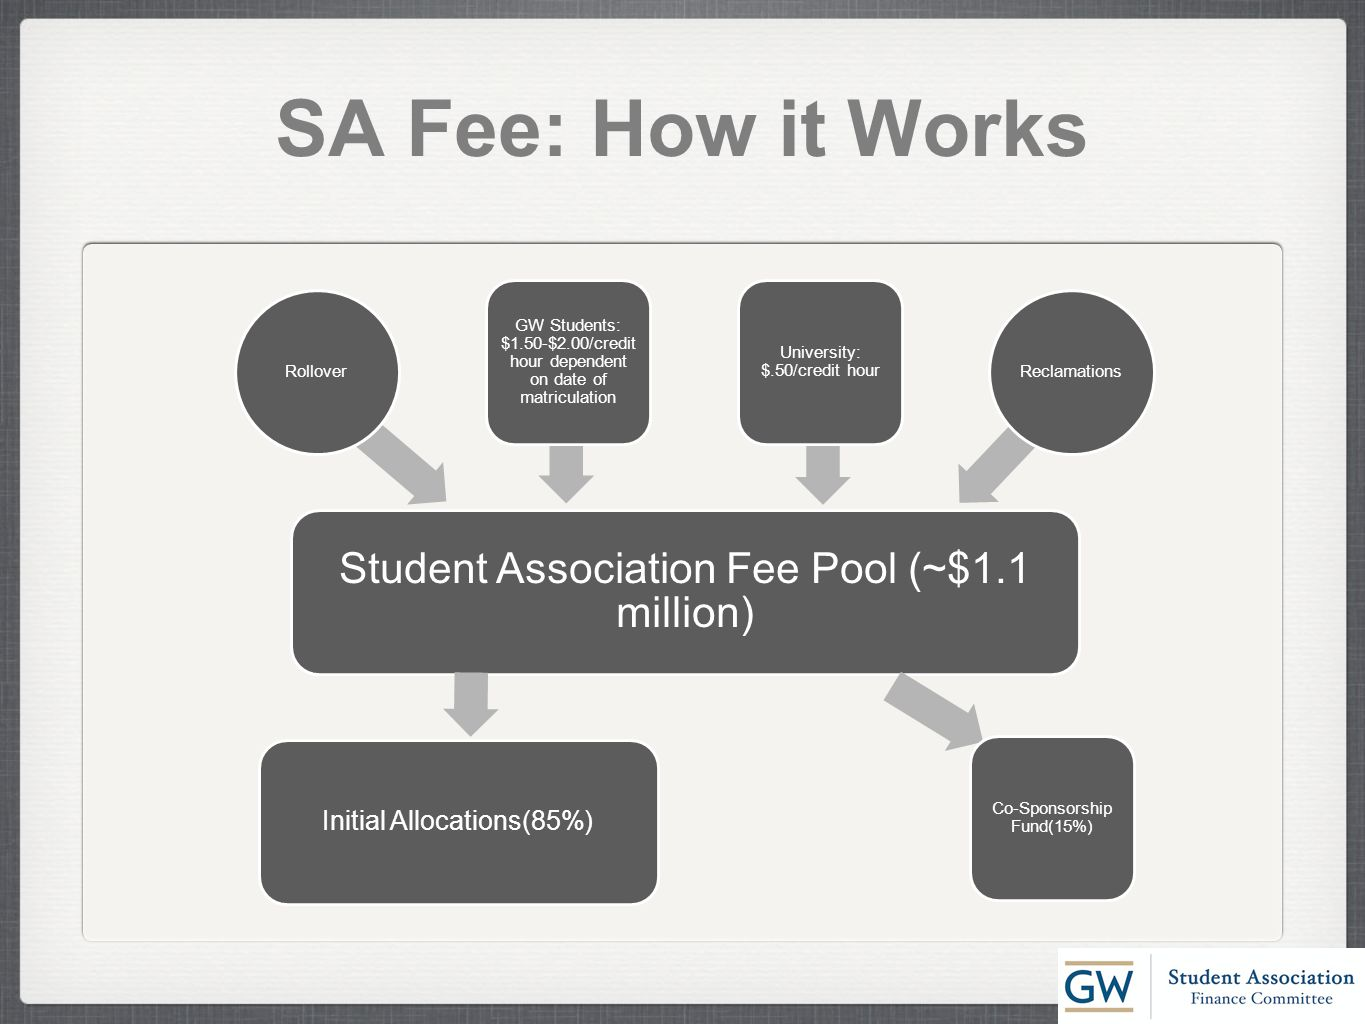 SA Fee: How it Works Student Association Fee Pool (~$1.1 million) GW Students: $1.50-$2.00/credit hour dependent on date of matriculation University: $.50/credit hour ReclamationsRollover Co-Sponsorship Fund(15%) Initial Allocations(85%)